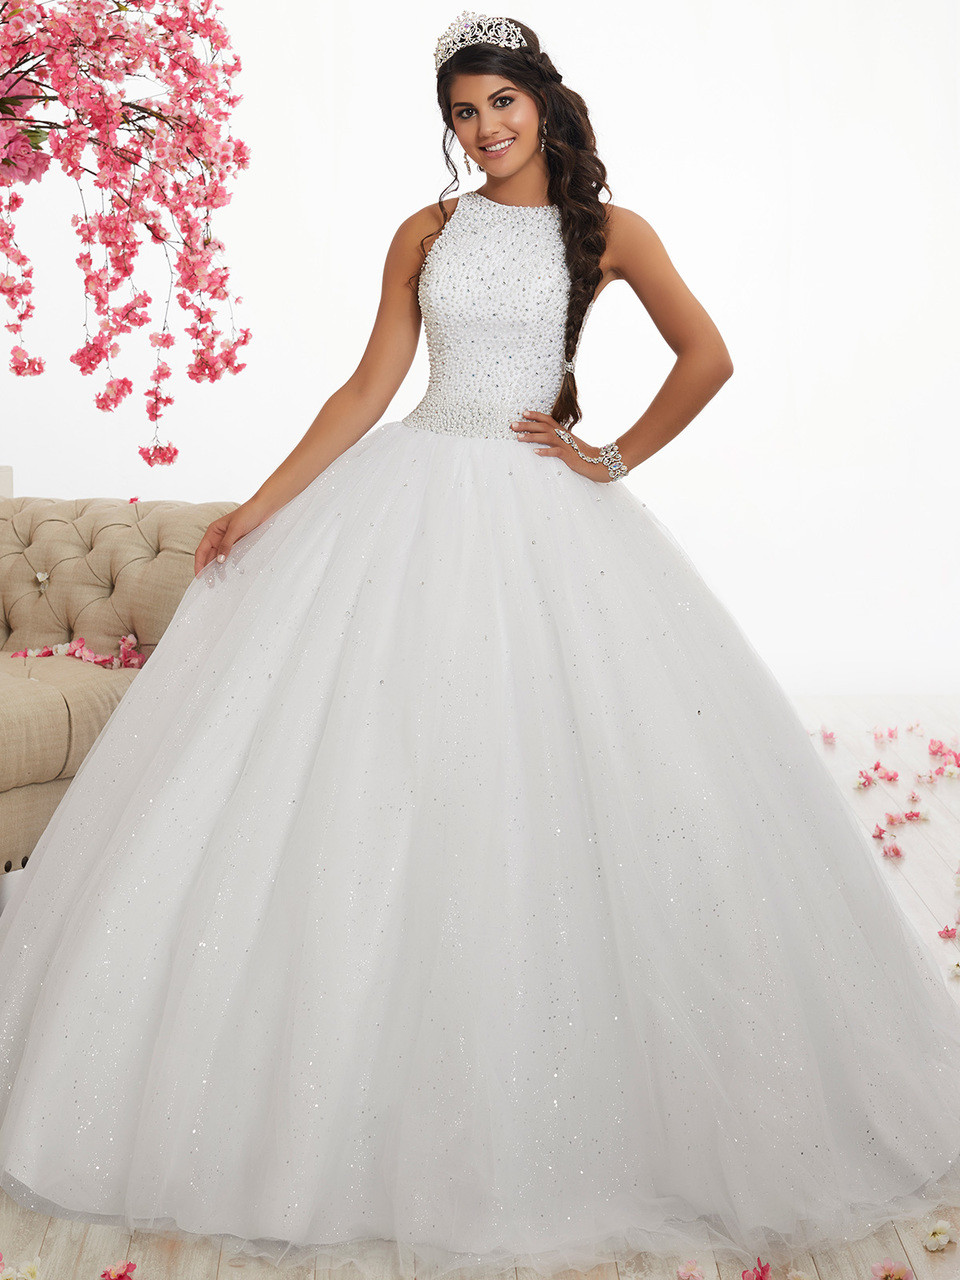 310b88216ff white high neck ball gown quinceanera dress with pearls fiesta 56318